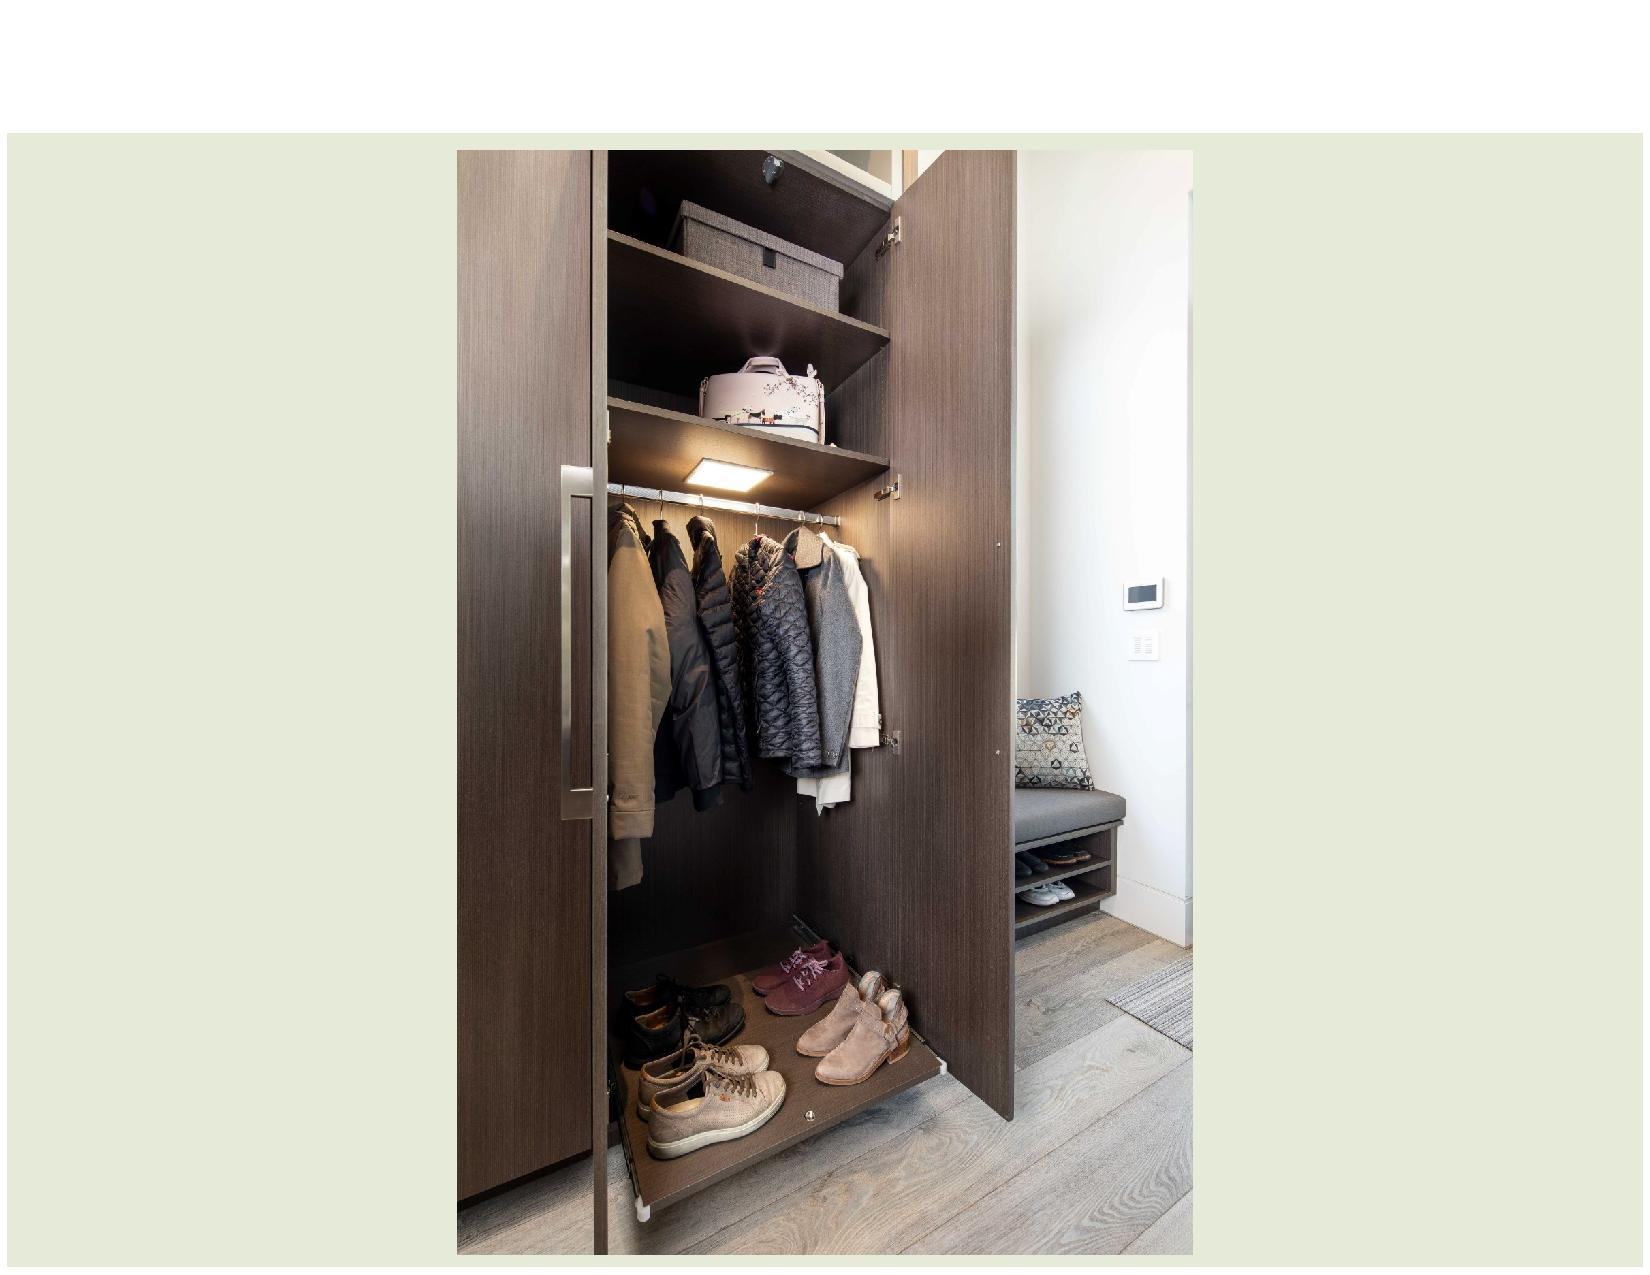 2019-06-04_External Wardrobe_Custom Stained Walnut (6)-CR-PX